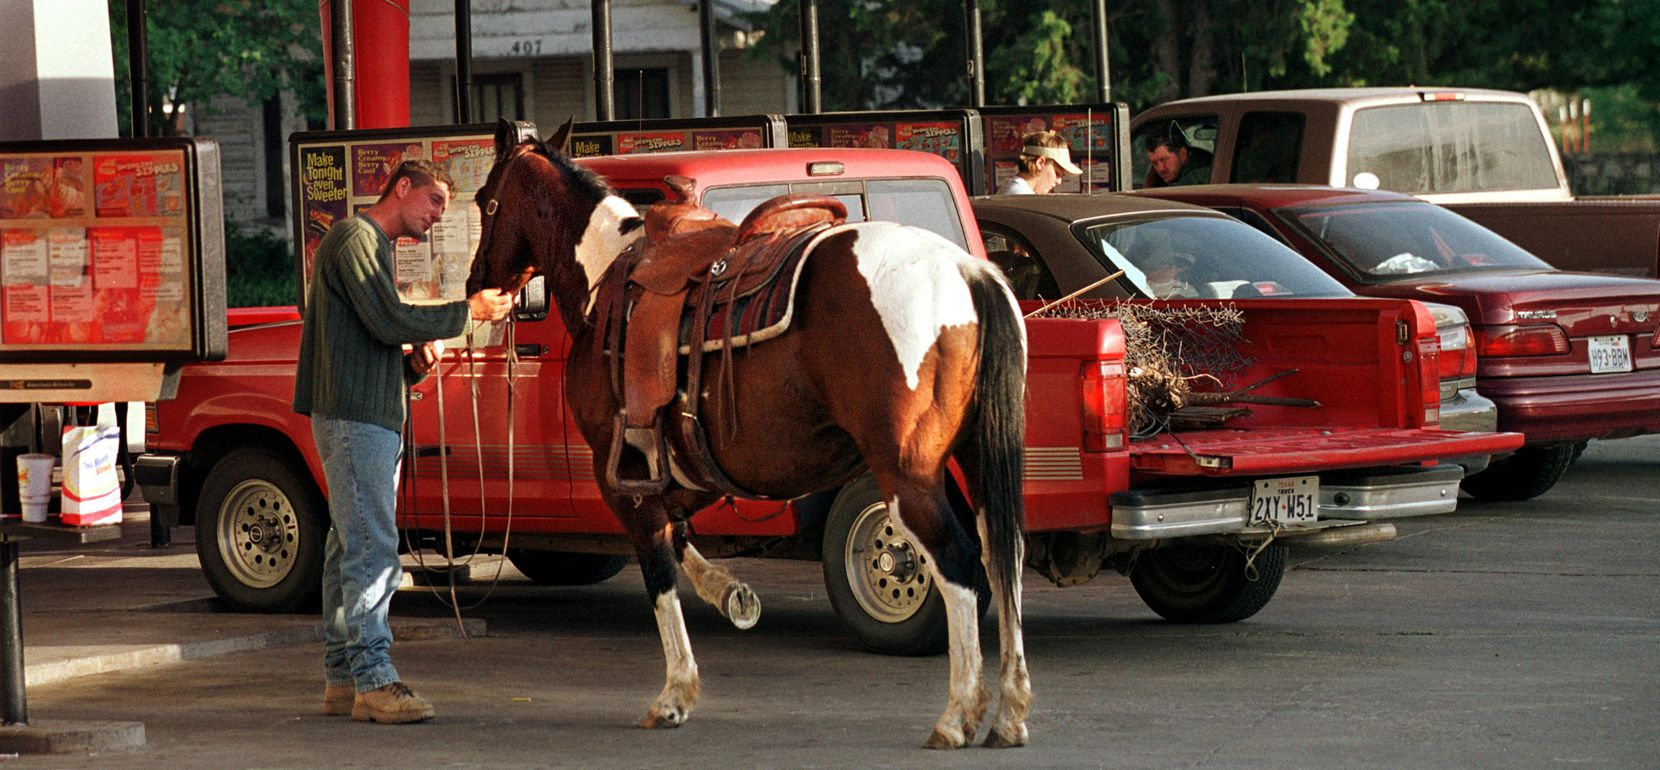 In 2001, Paul Moore and filly, Tarzan, rode 10 blocks into town for a burger and fries at the Sonic Drive-In on a Tuesday night in Quanah. Moore said his horse likes the french fries.